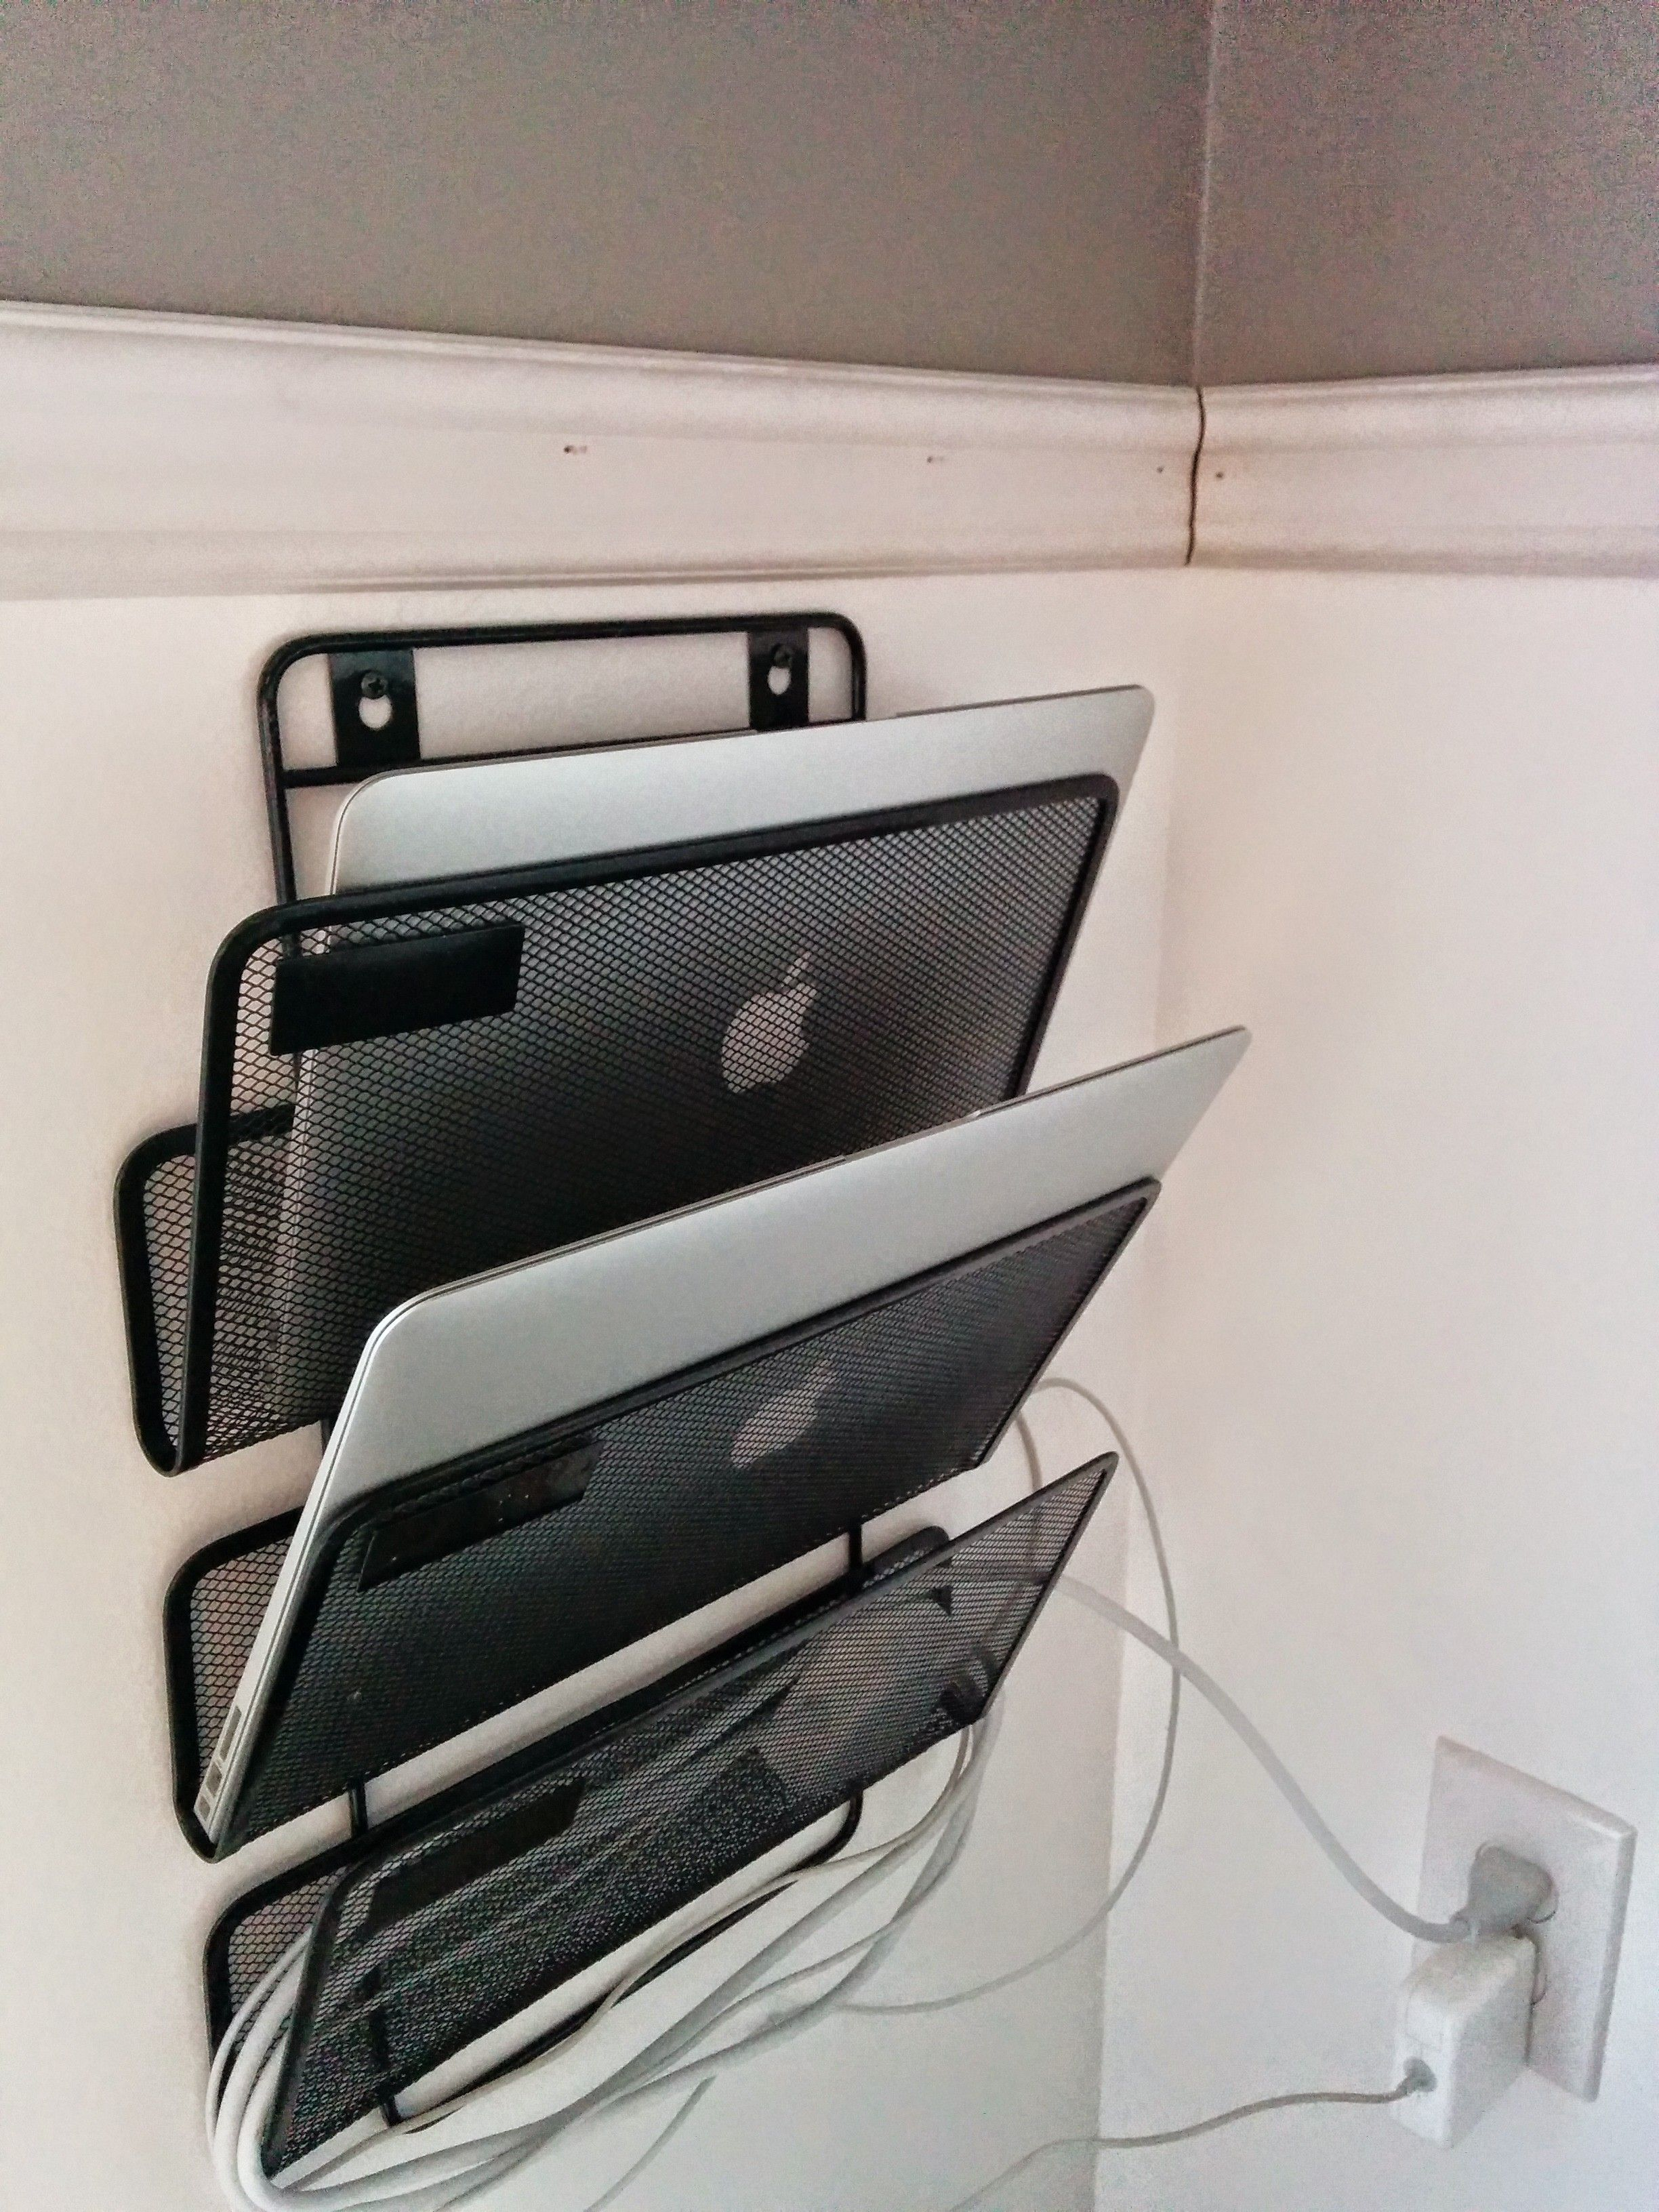 laptop storage rack so my and i were tired of cleaning the kitchen only 22463